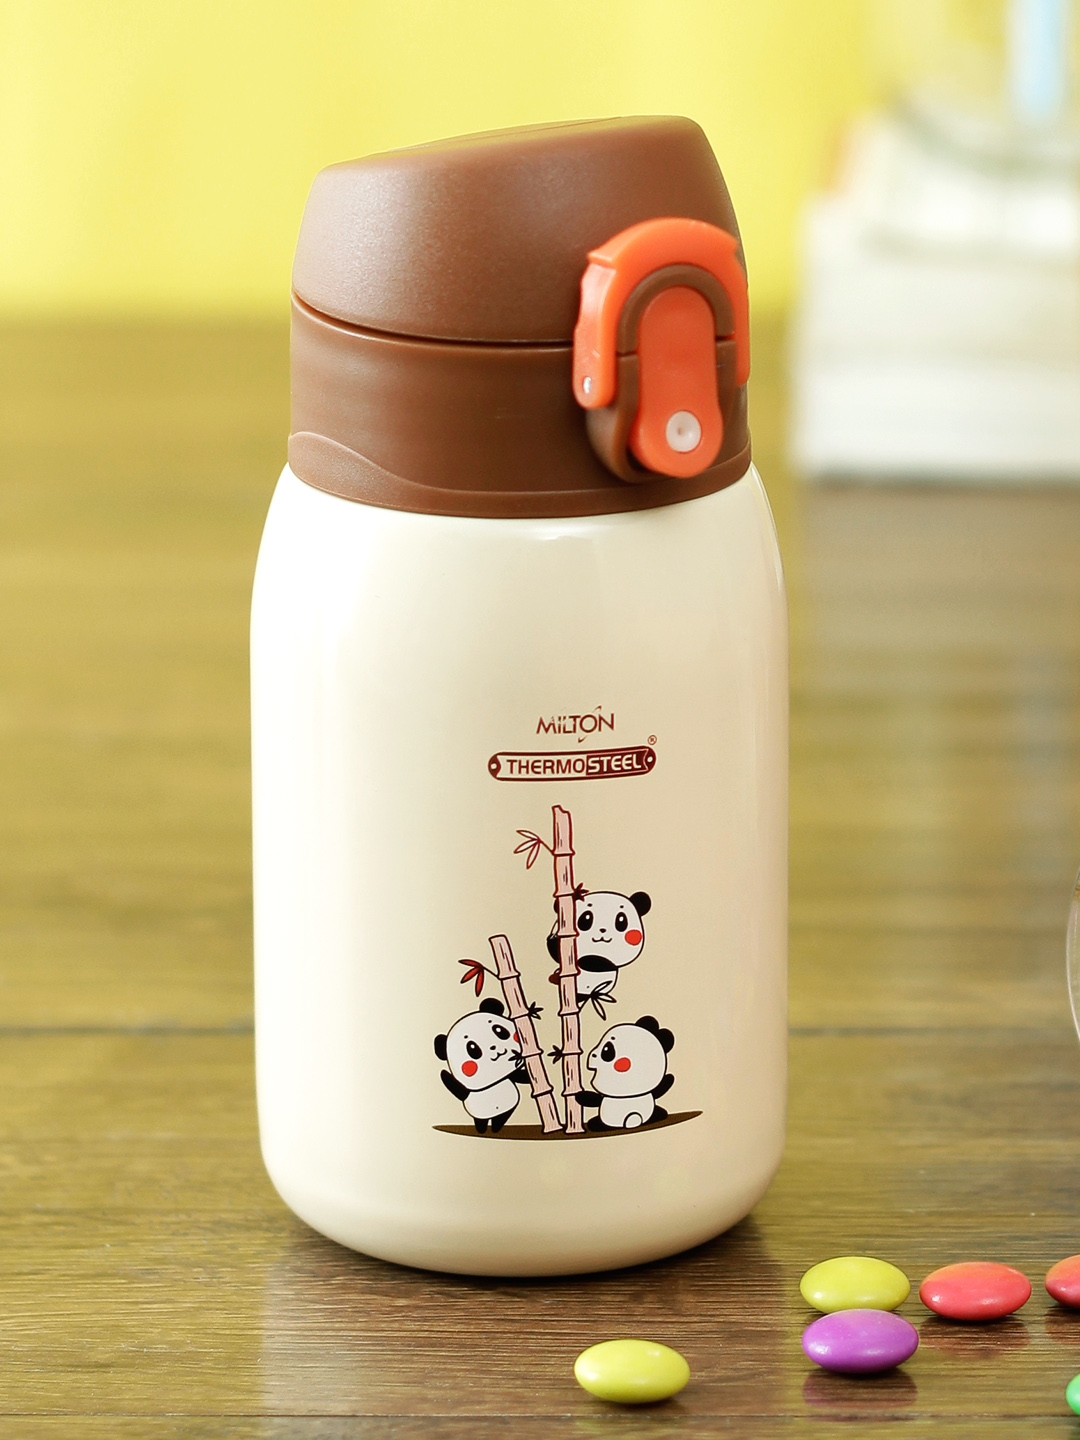 Milton Jolly 275 THERMOSTEEL WATER SIPPER BOTTLE BROWN, 230 ml